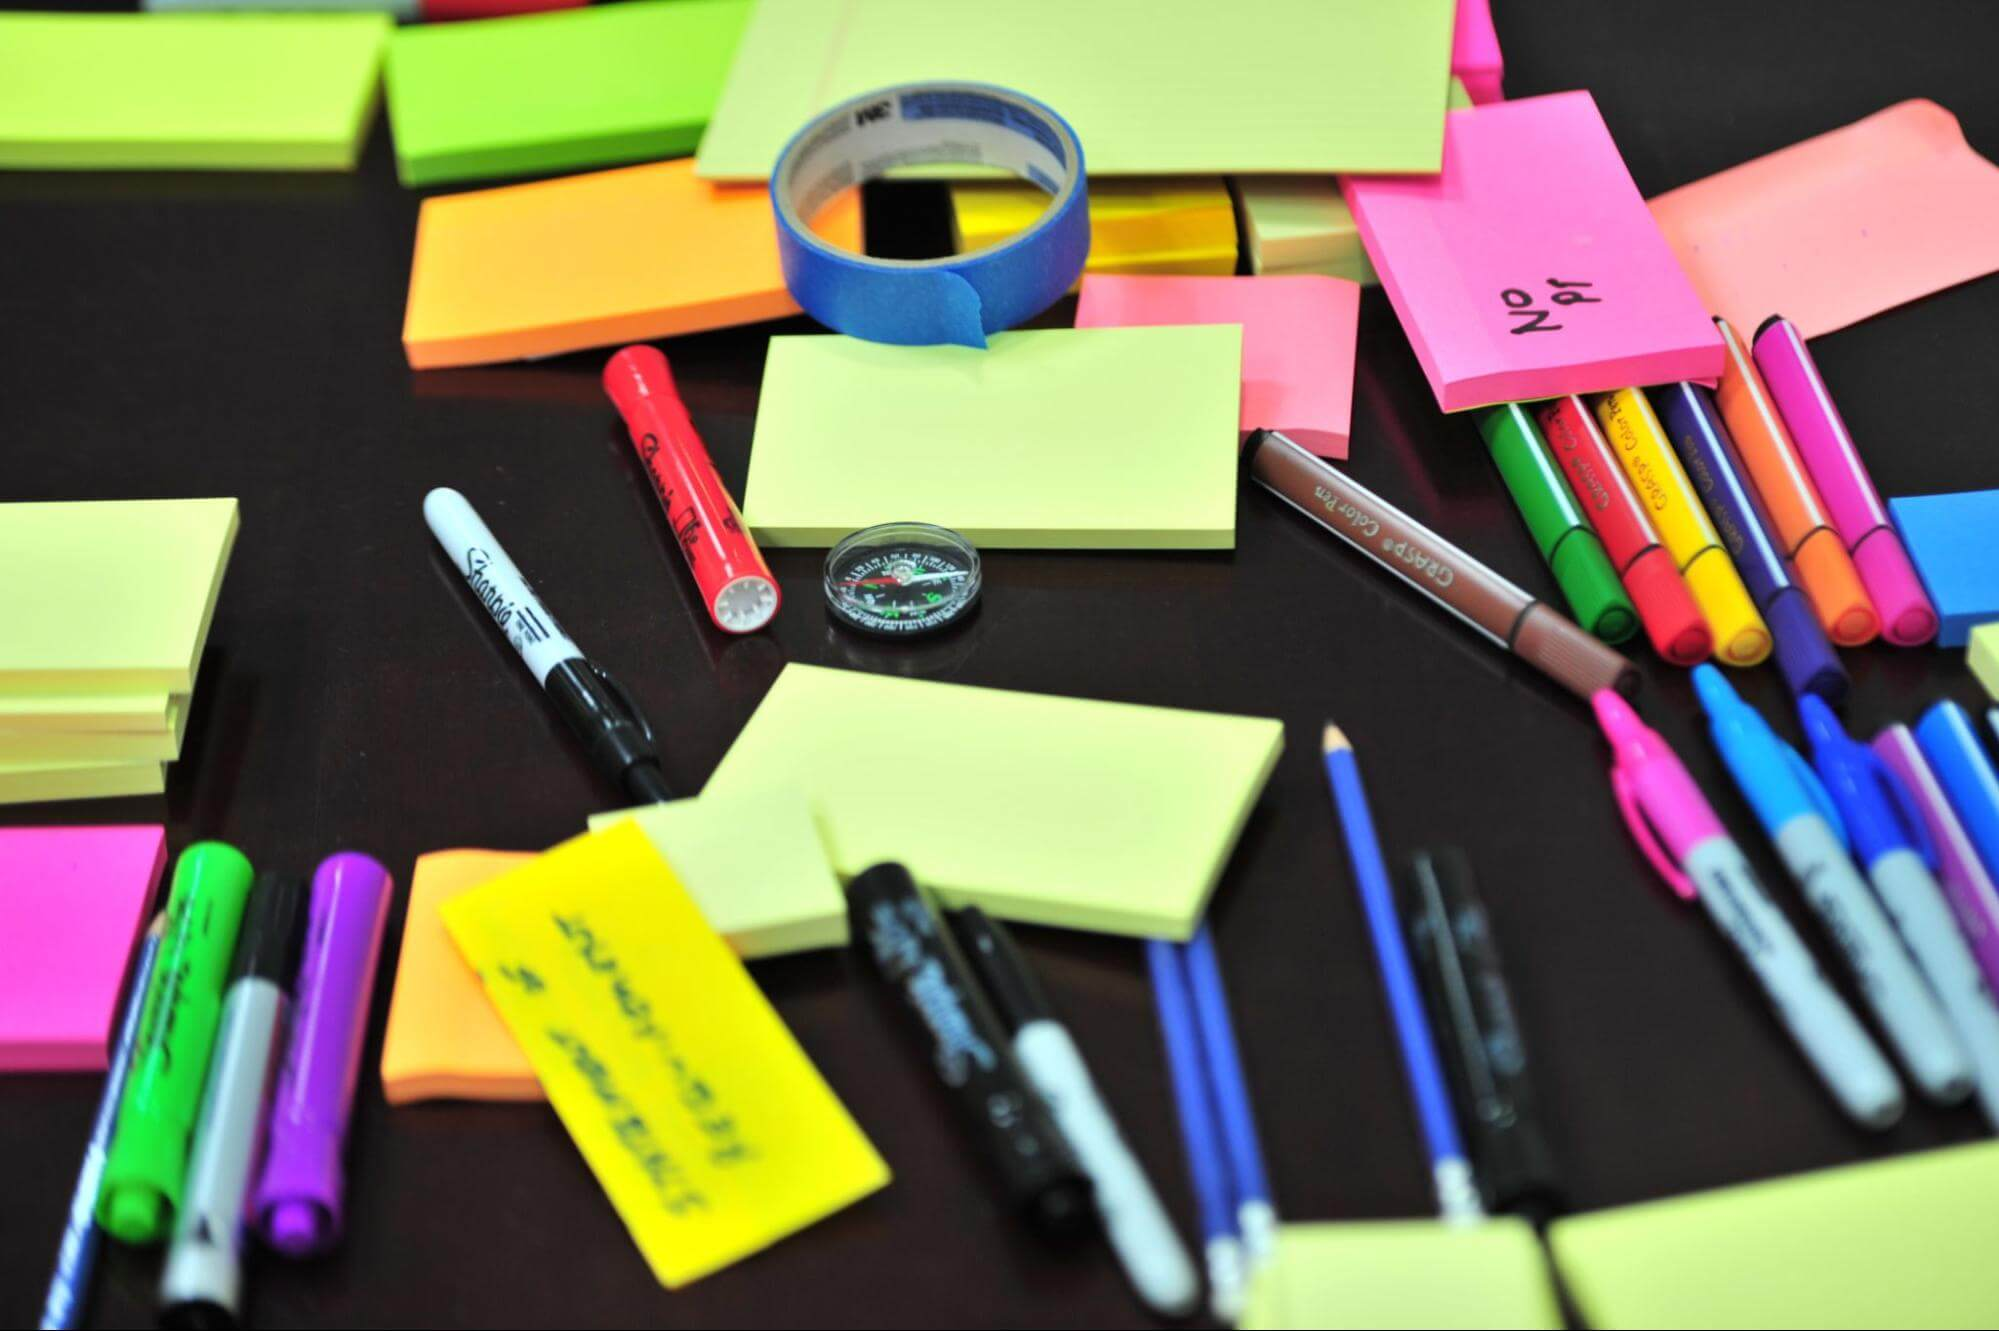 Assortment of office supplies - post-it notes, pens, highlighters, etc.